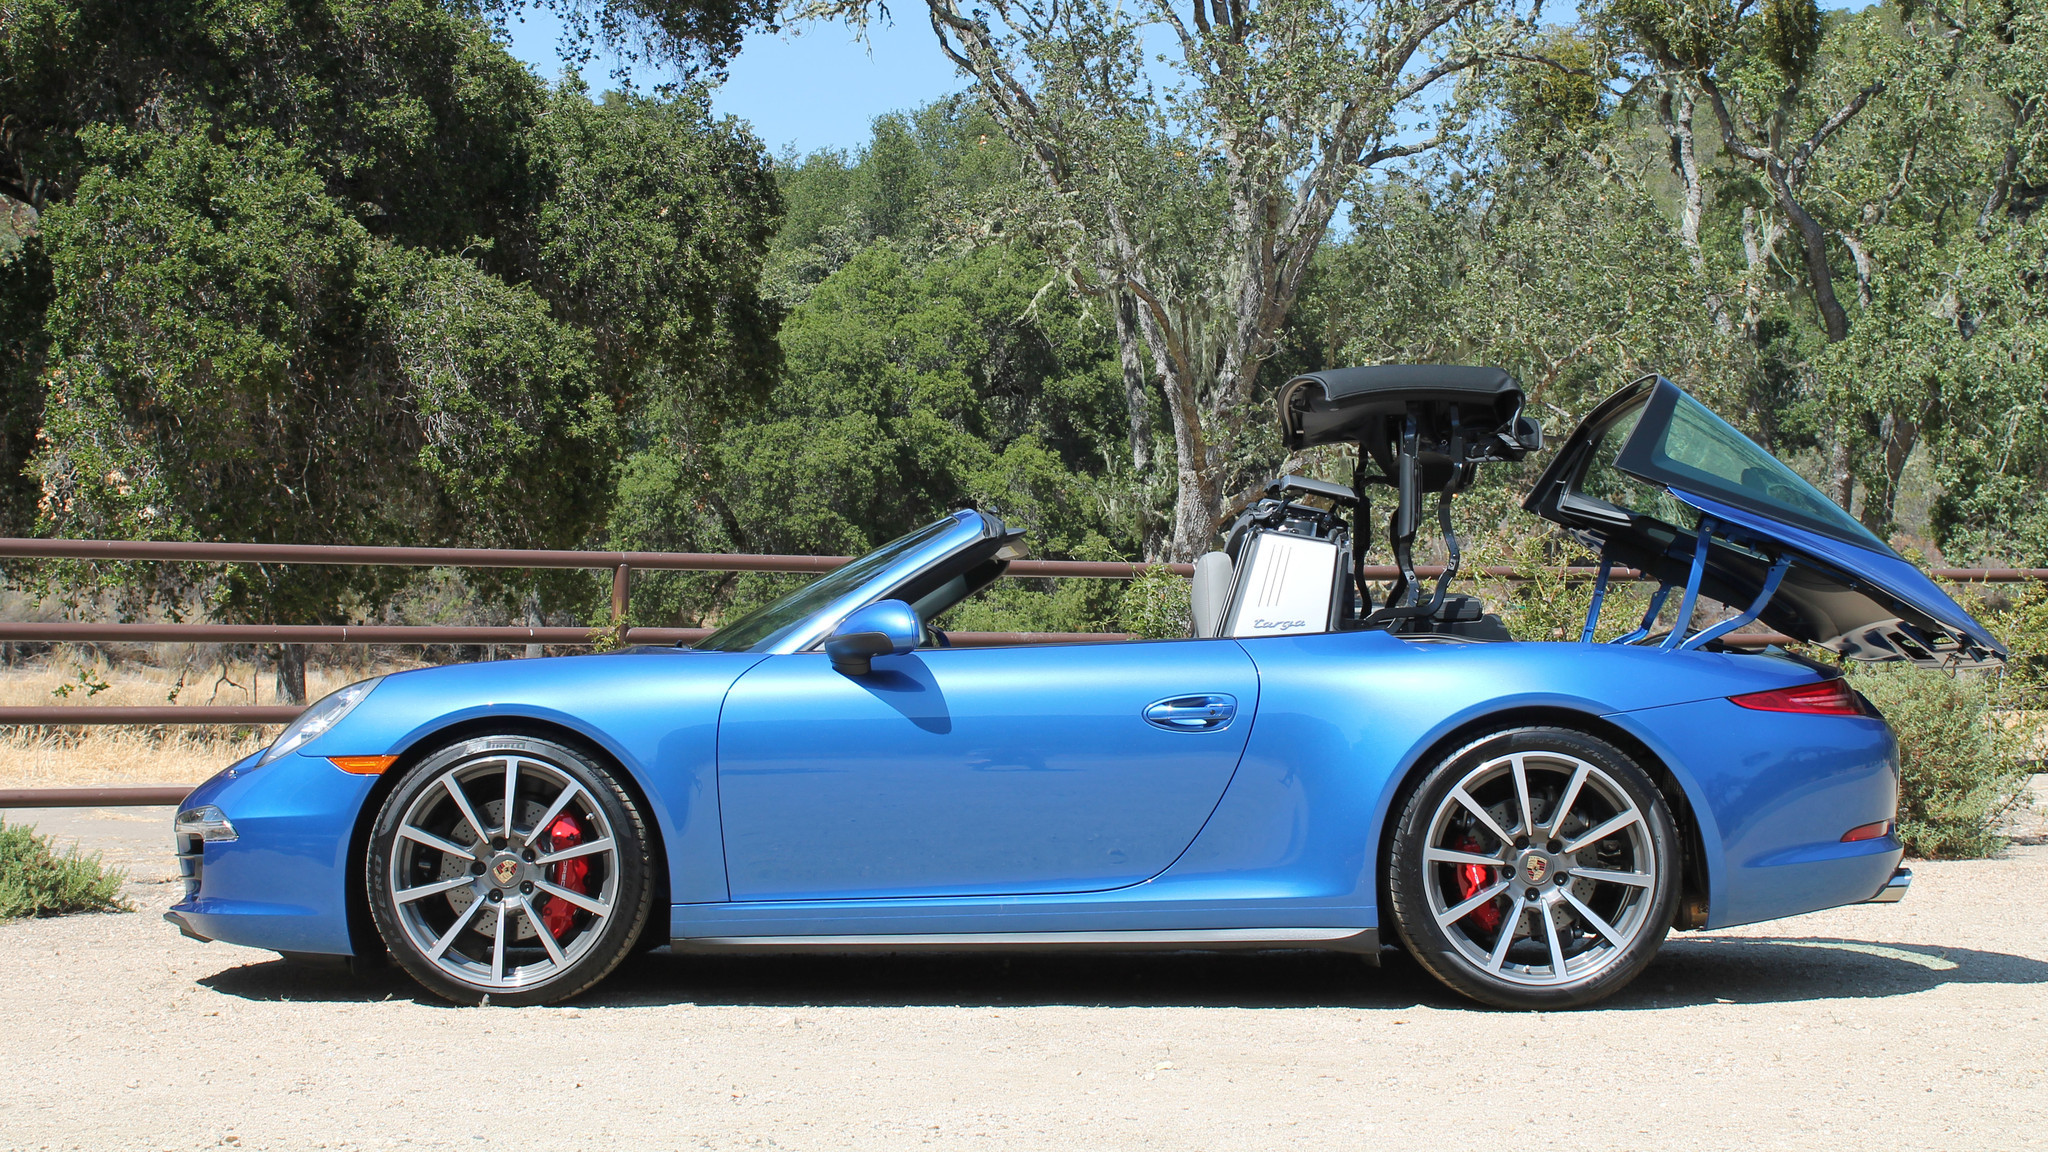 review removable roof on porsche 911 targa 4s offers california